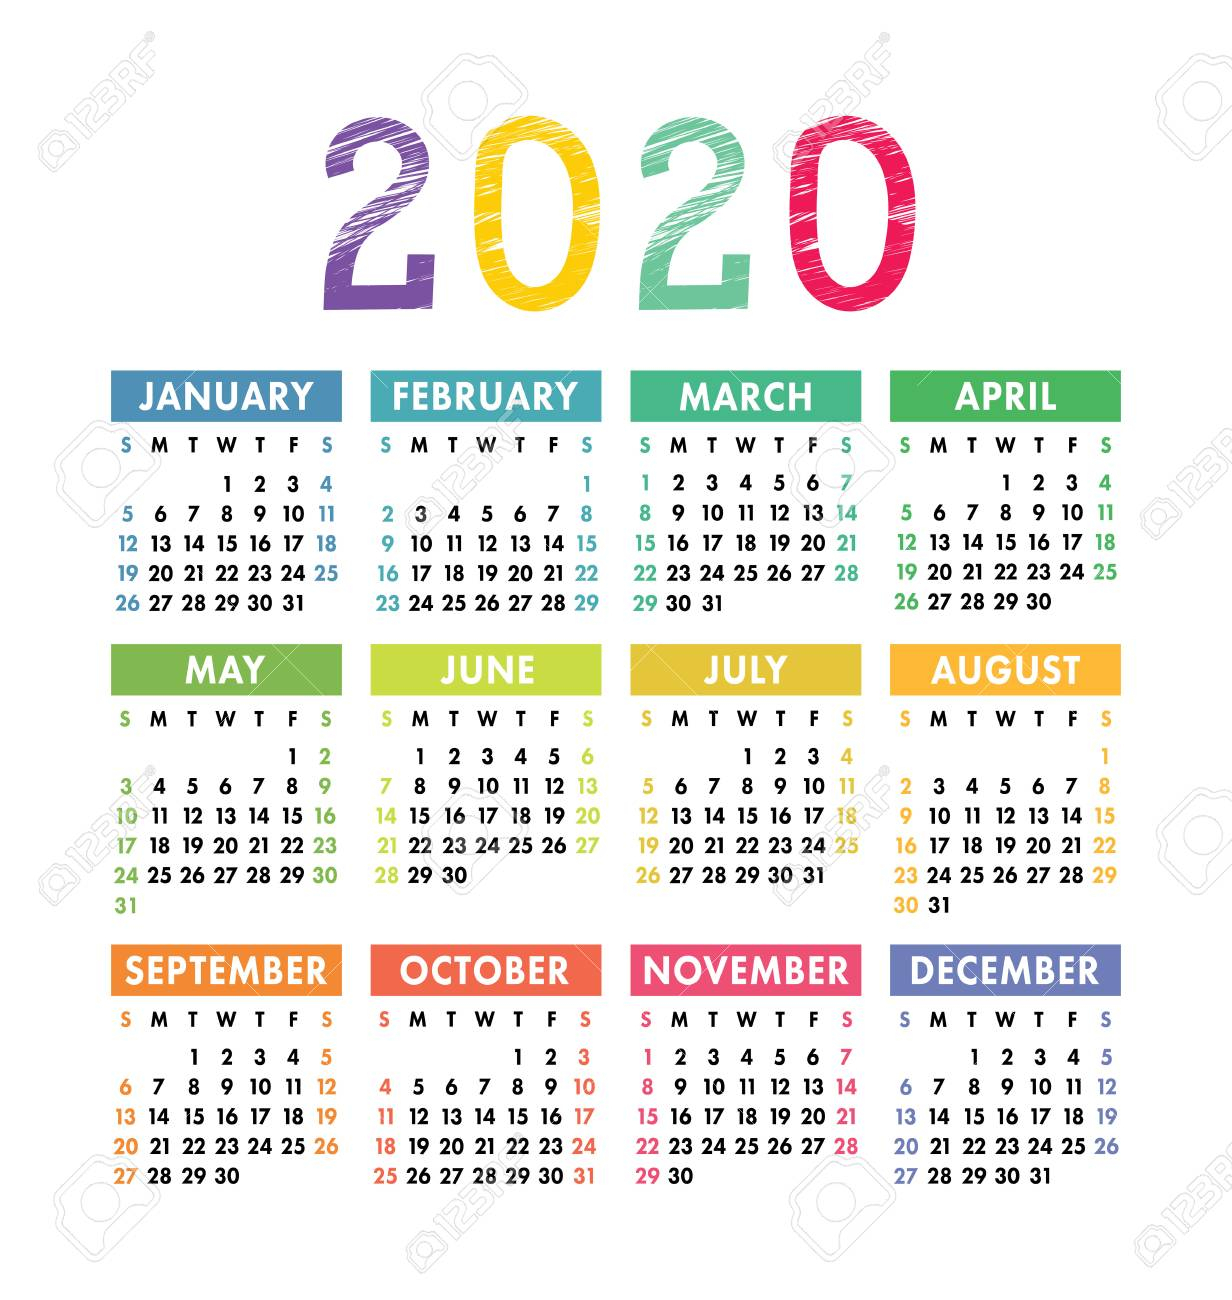 Printable Pocket Calendar 2020 - Wpa.wpart.co within Printable Pocket Calendar 2020